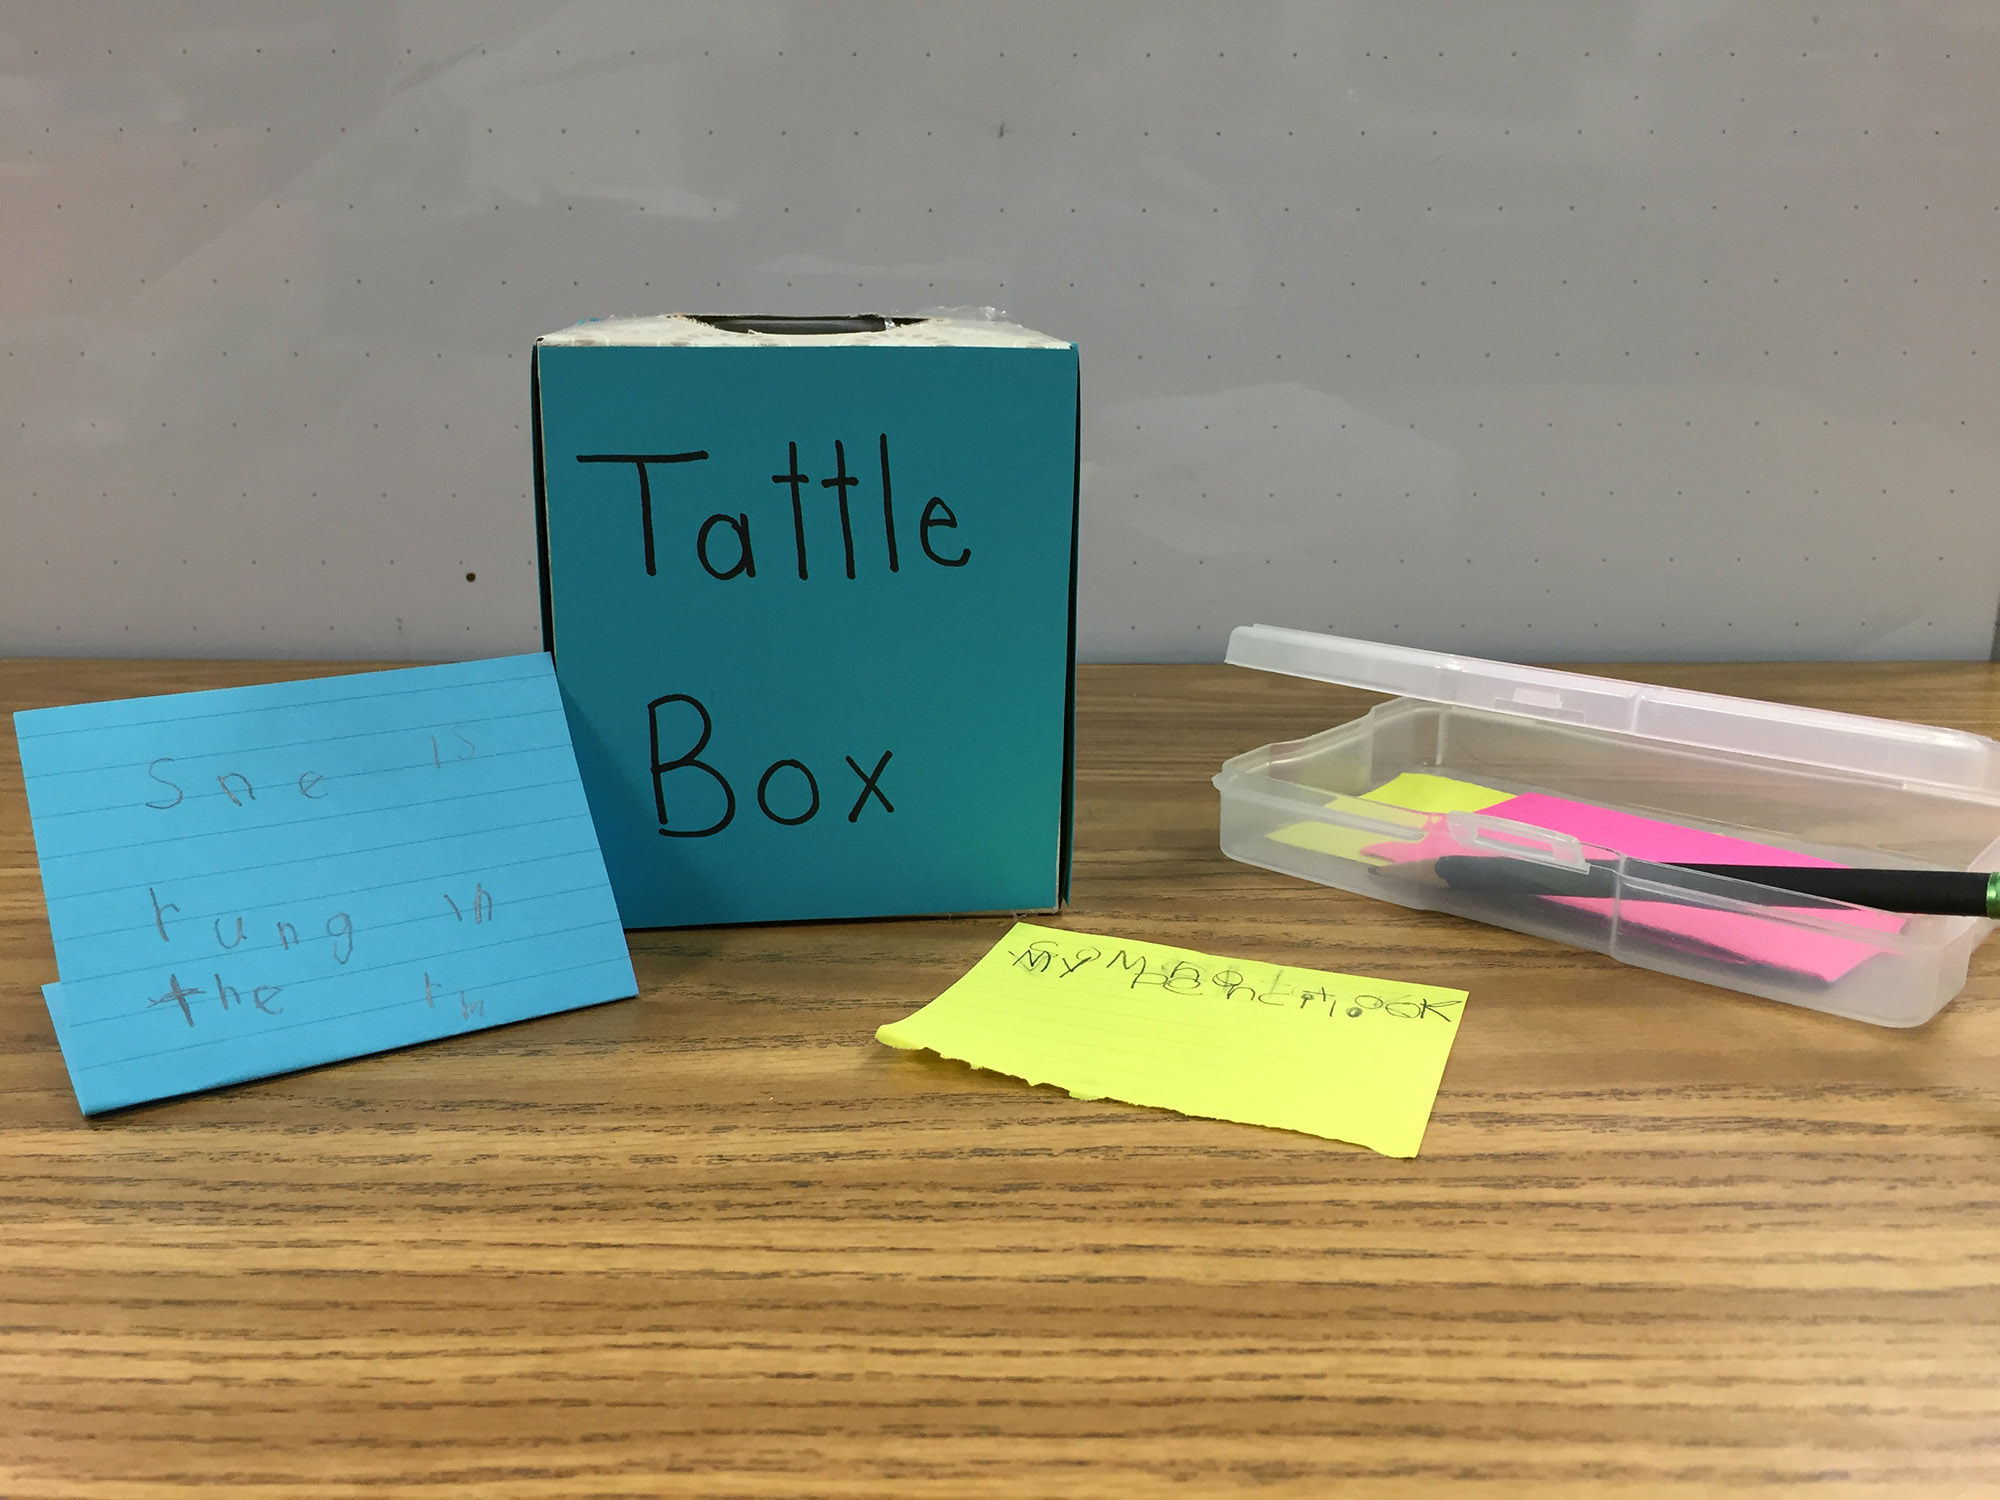 A decorated tissue box to put tattles in